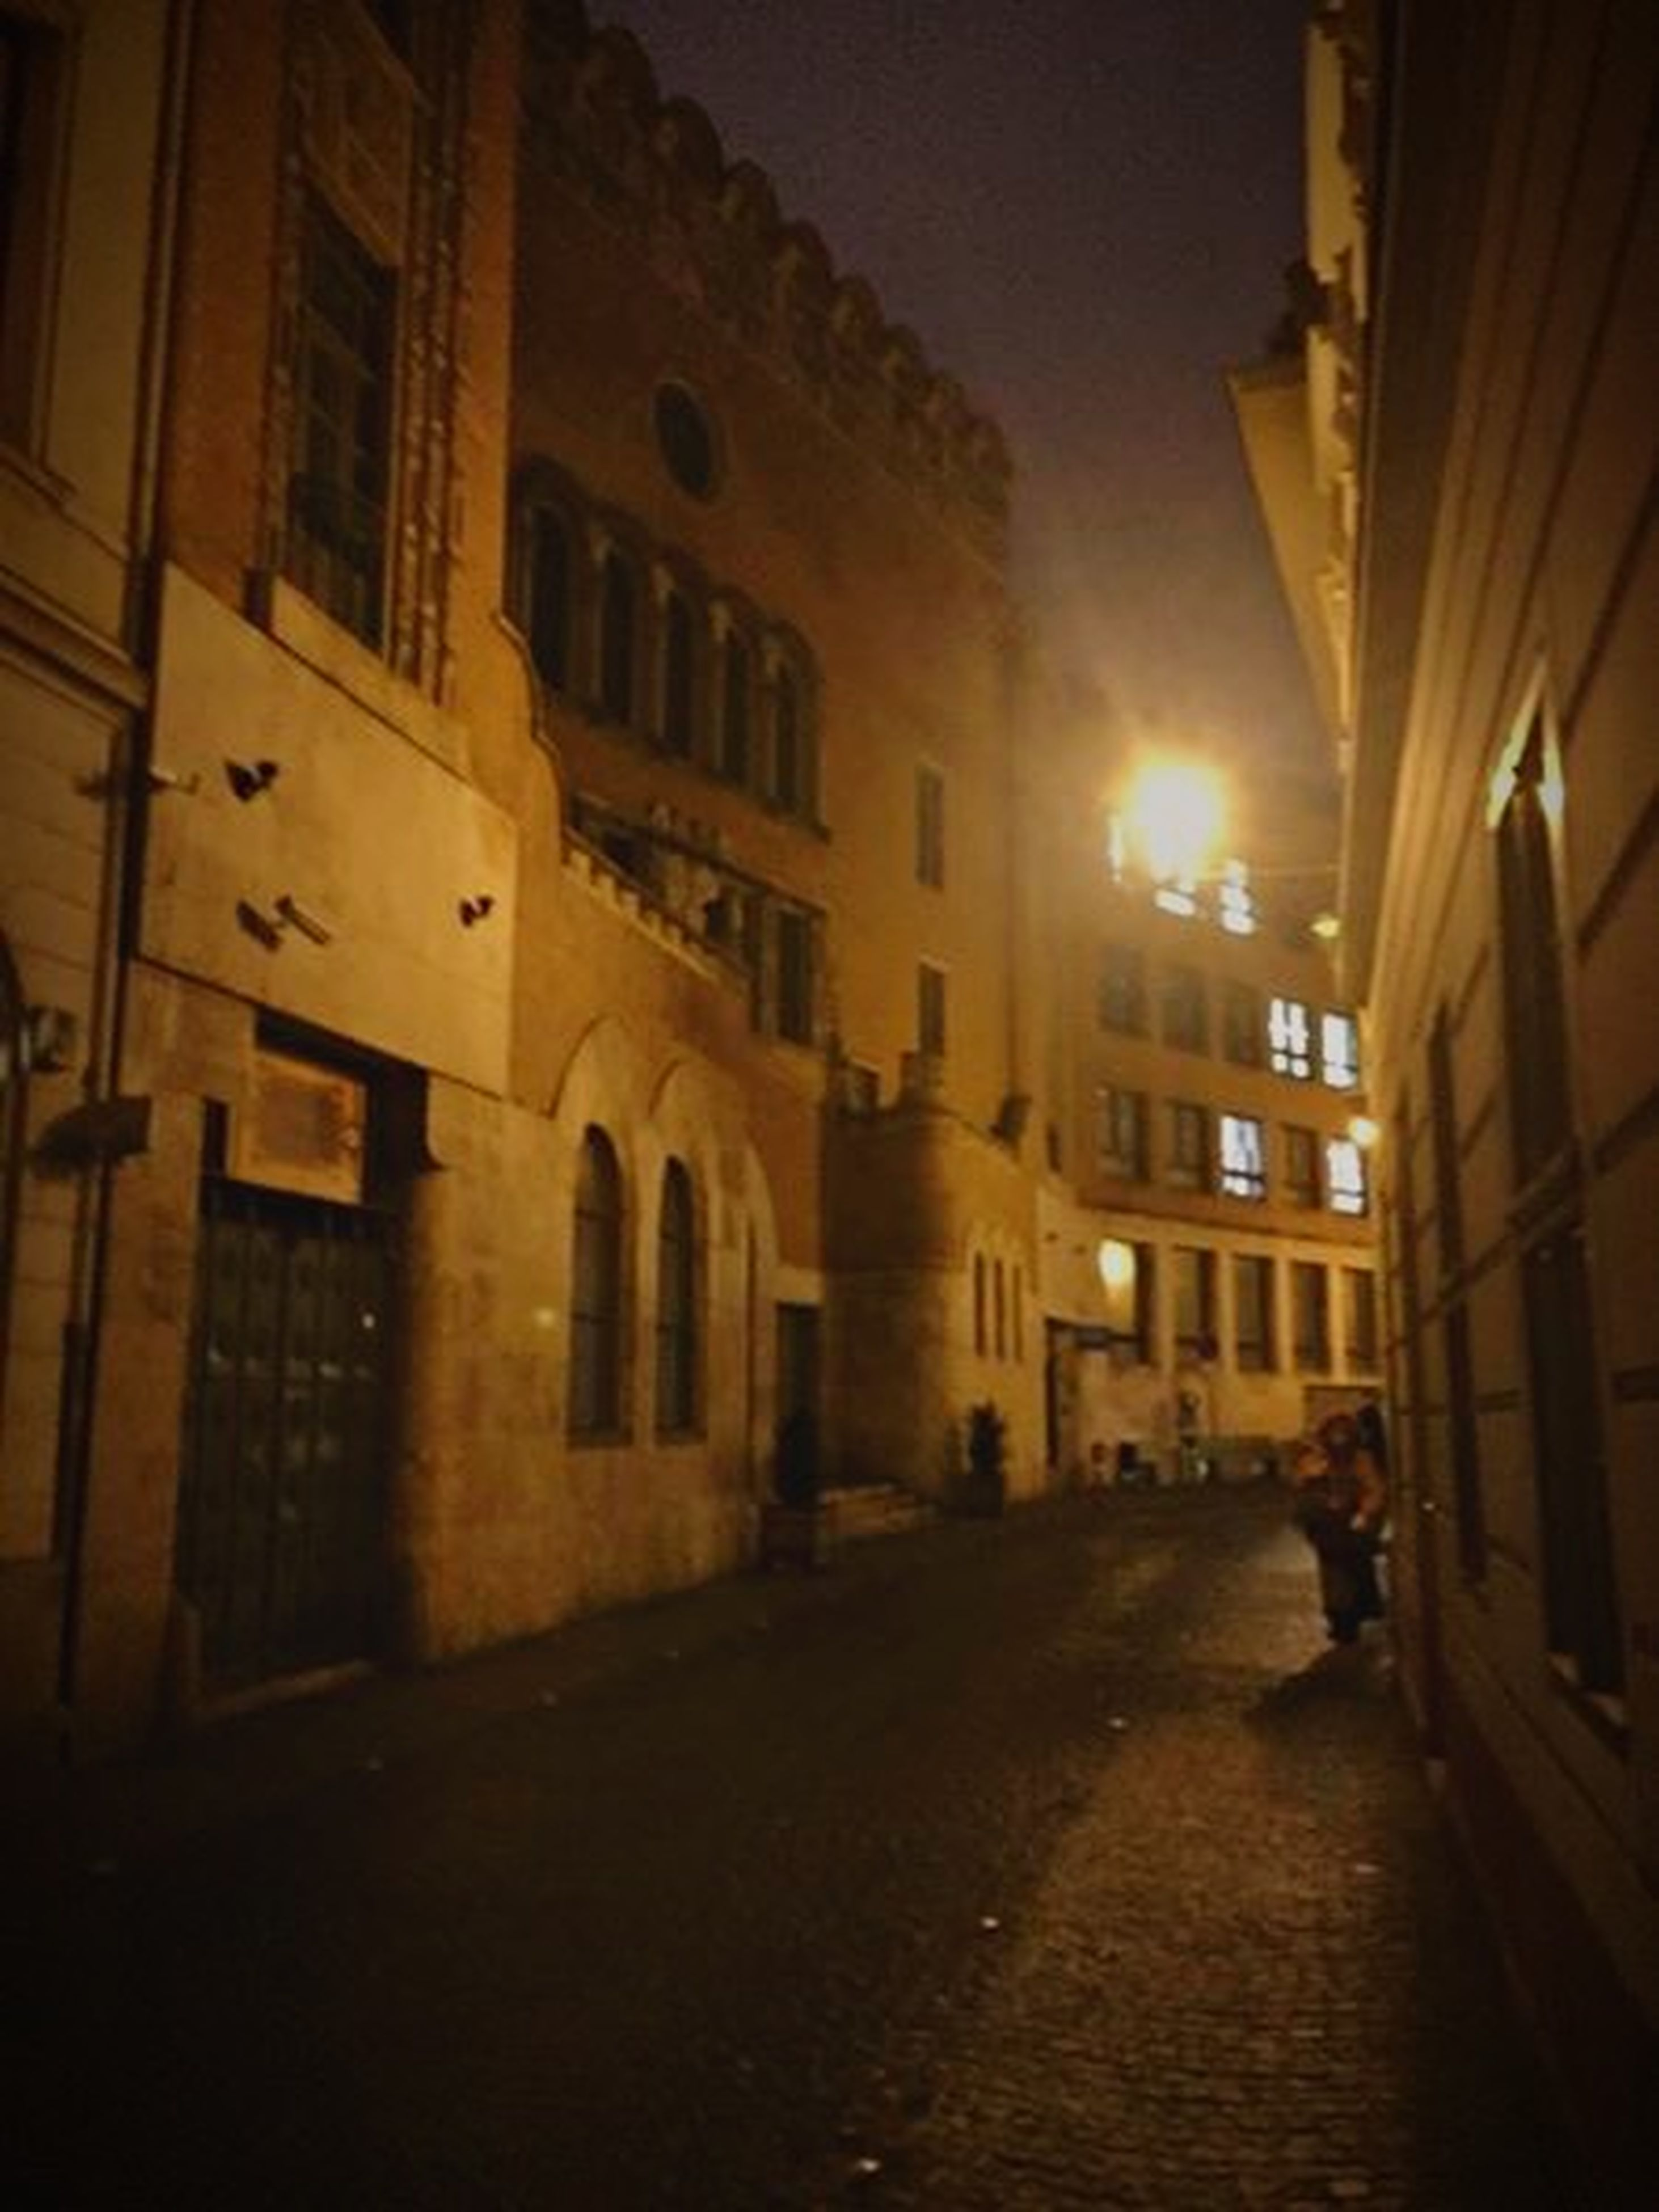 building exterior, architecture, built structure, street, city, the way forward, building, illuminated, residential building, night, residential structure, city life, diminishing perspective, street light, walking, incidental people, alley, cobblestone, city street